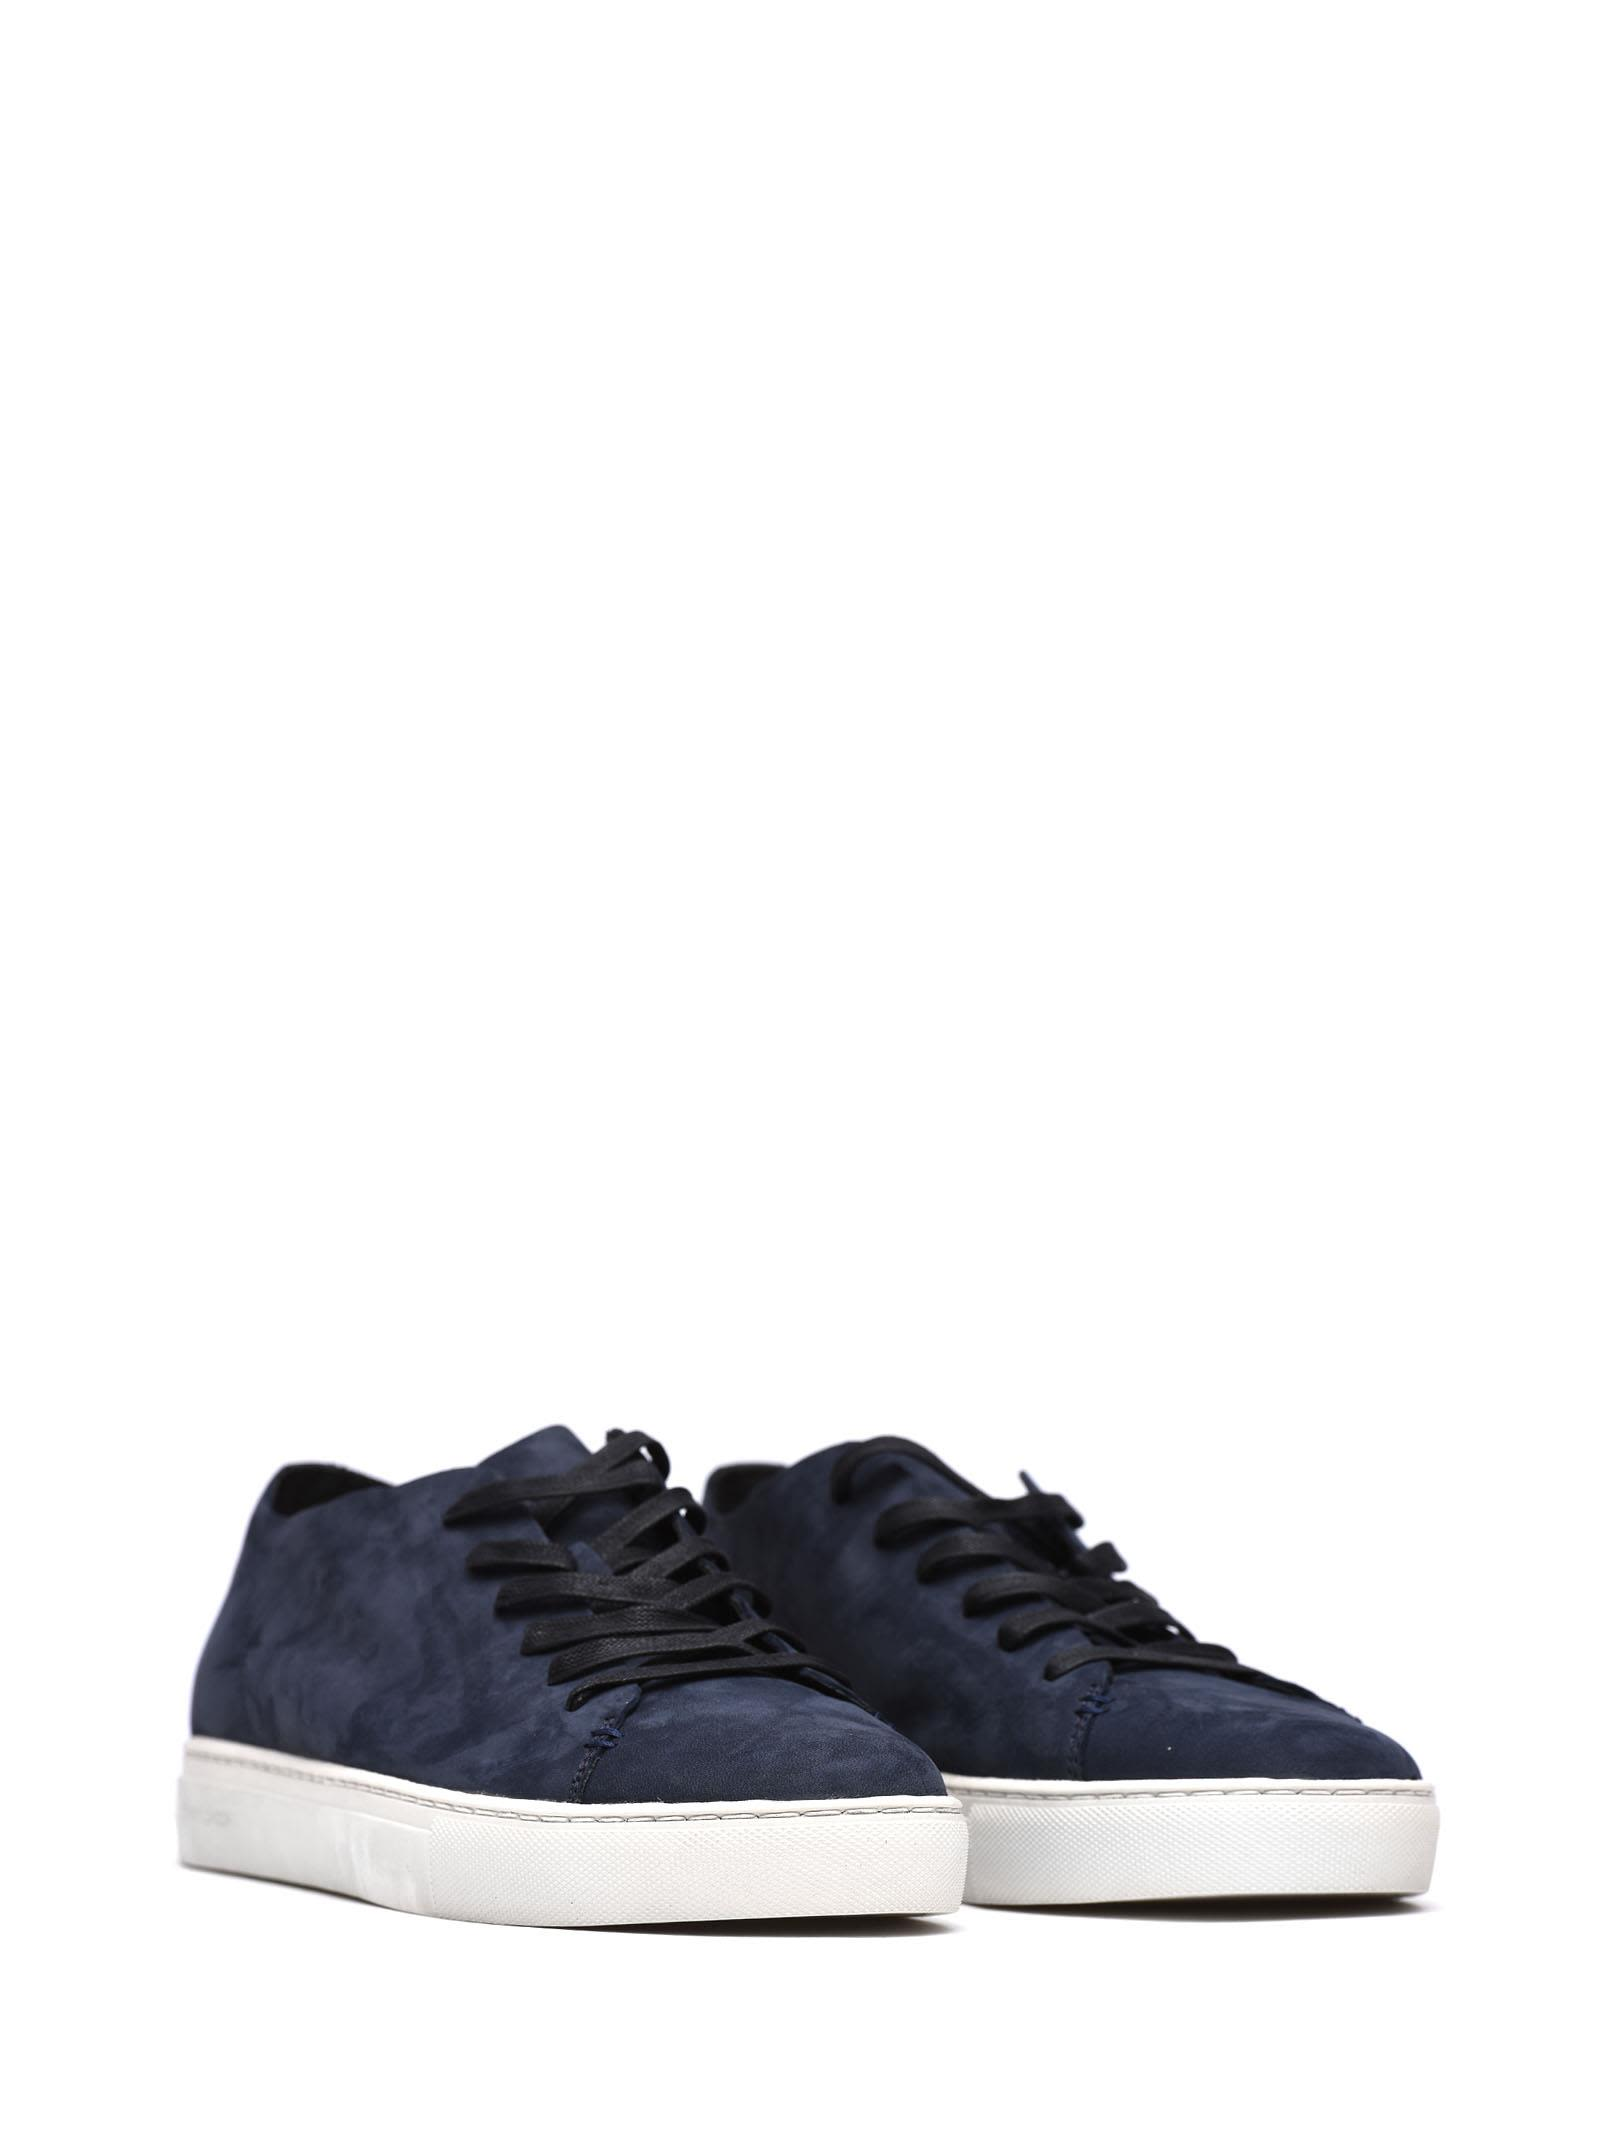 Crime RAW LO SUEDE SNEAKERS ojpmQQ